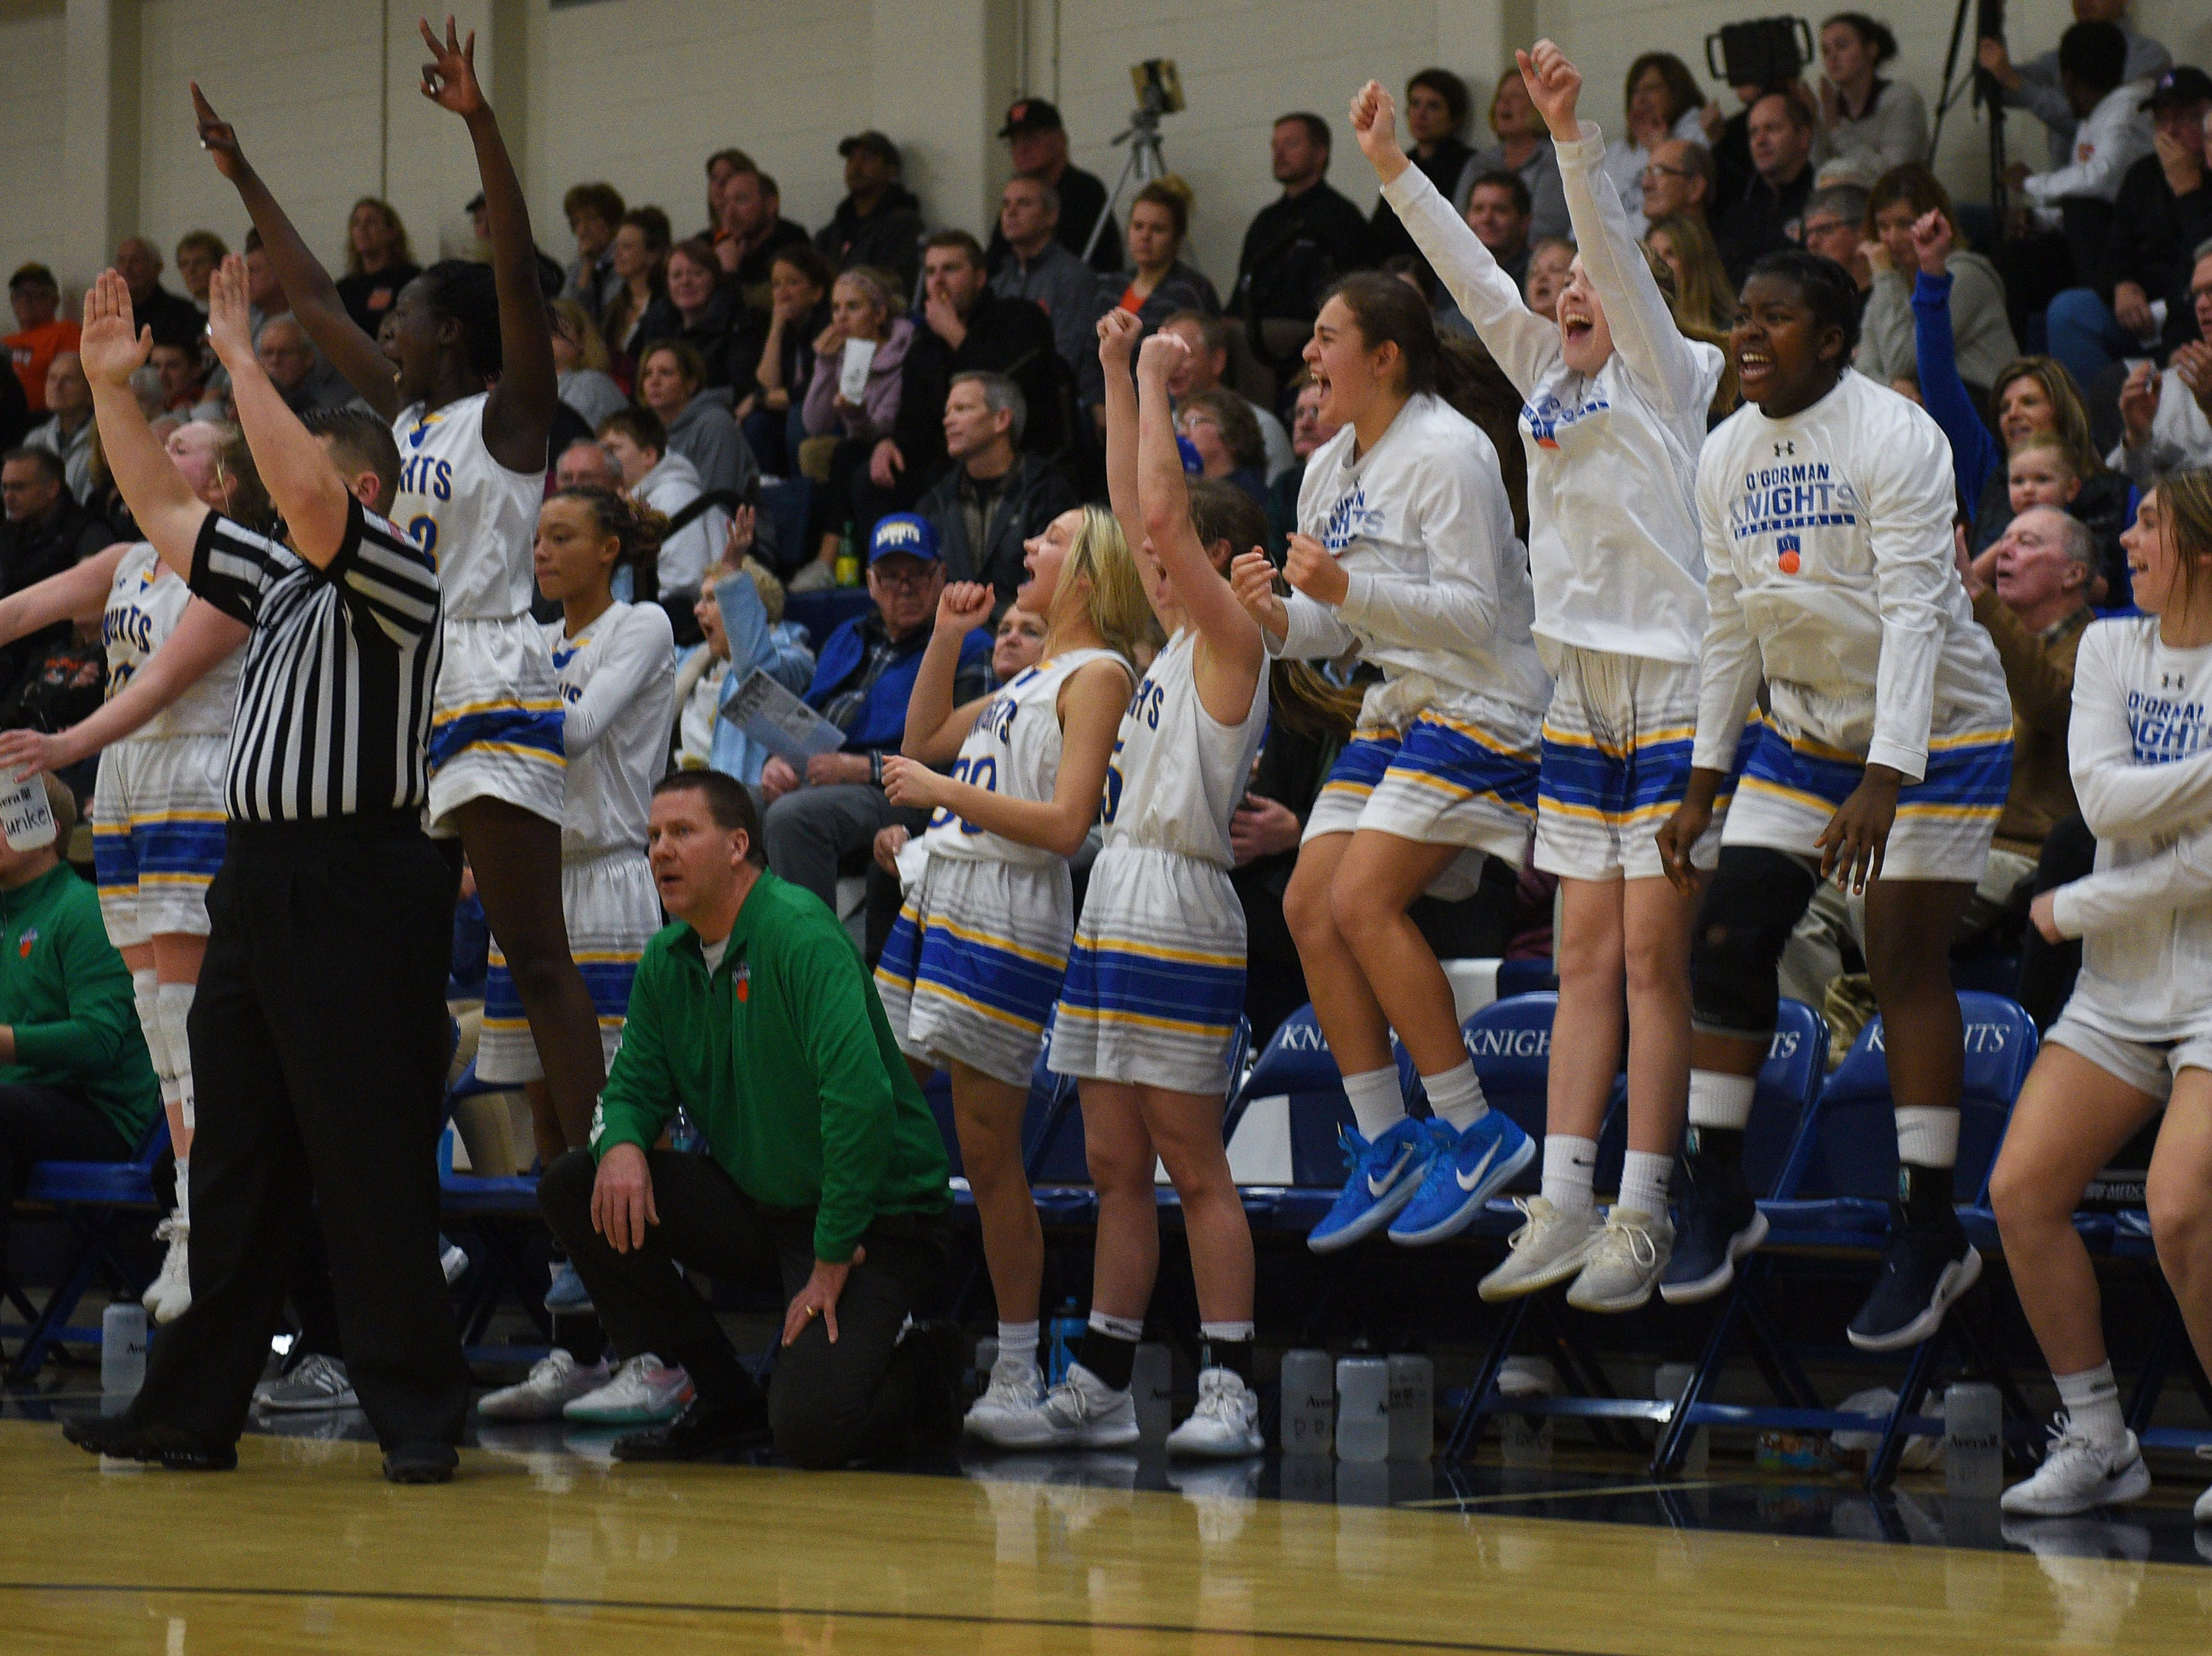 O'Gorman cheers during the game against Washington Thursday, Jan. 10, at O'Gorman in Sioux Falls.